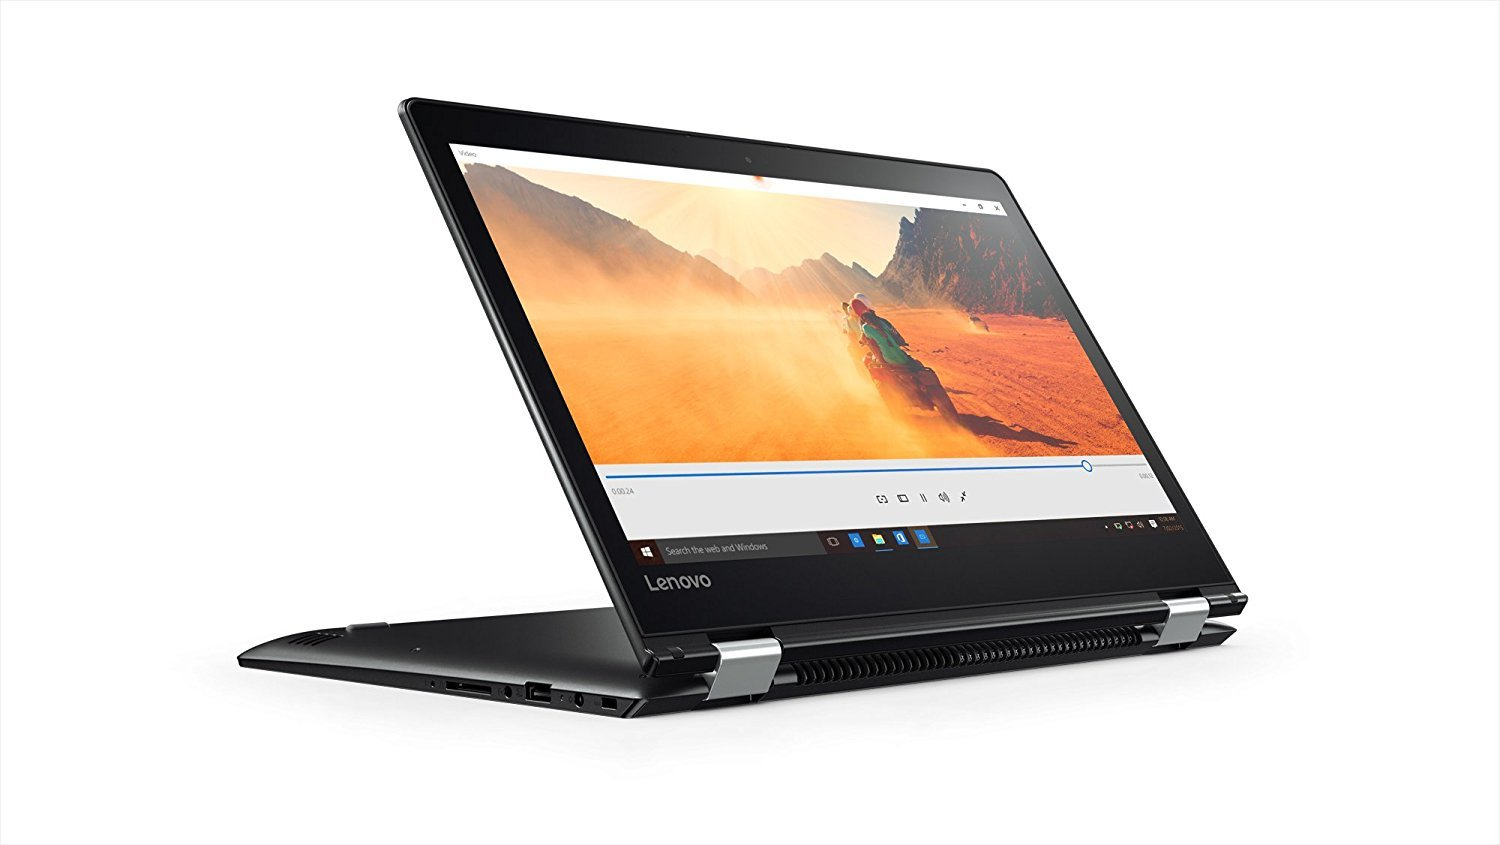 Lenovo ThinkPad YOGA370 20JHS02900 13.3inch Laptop